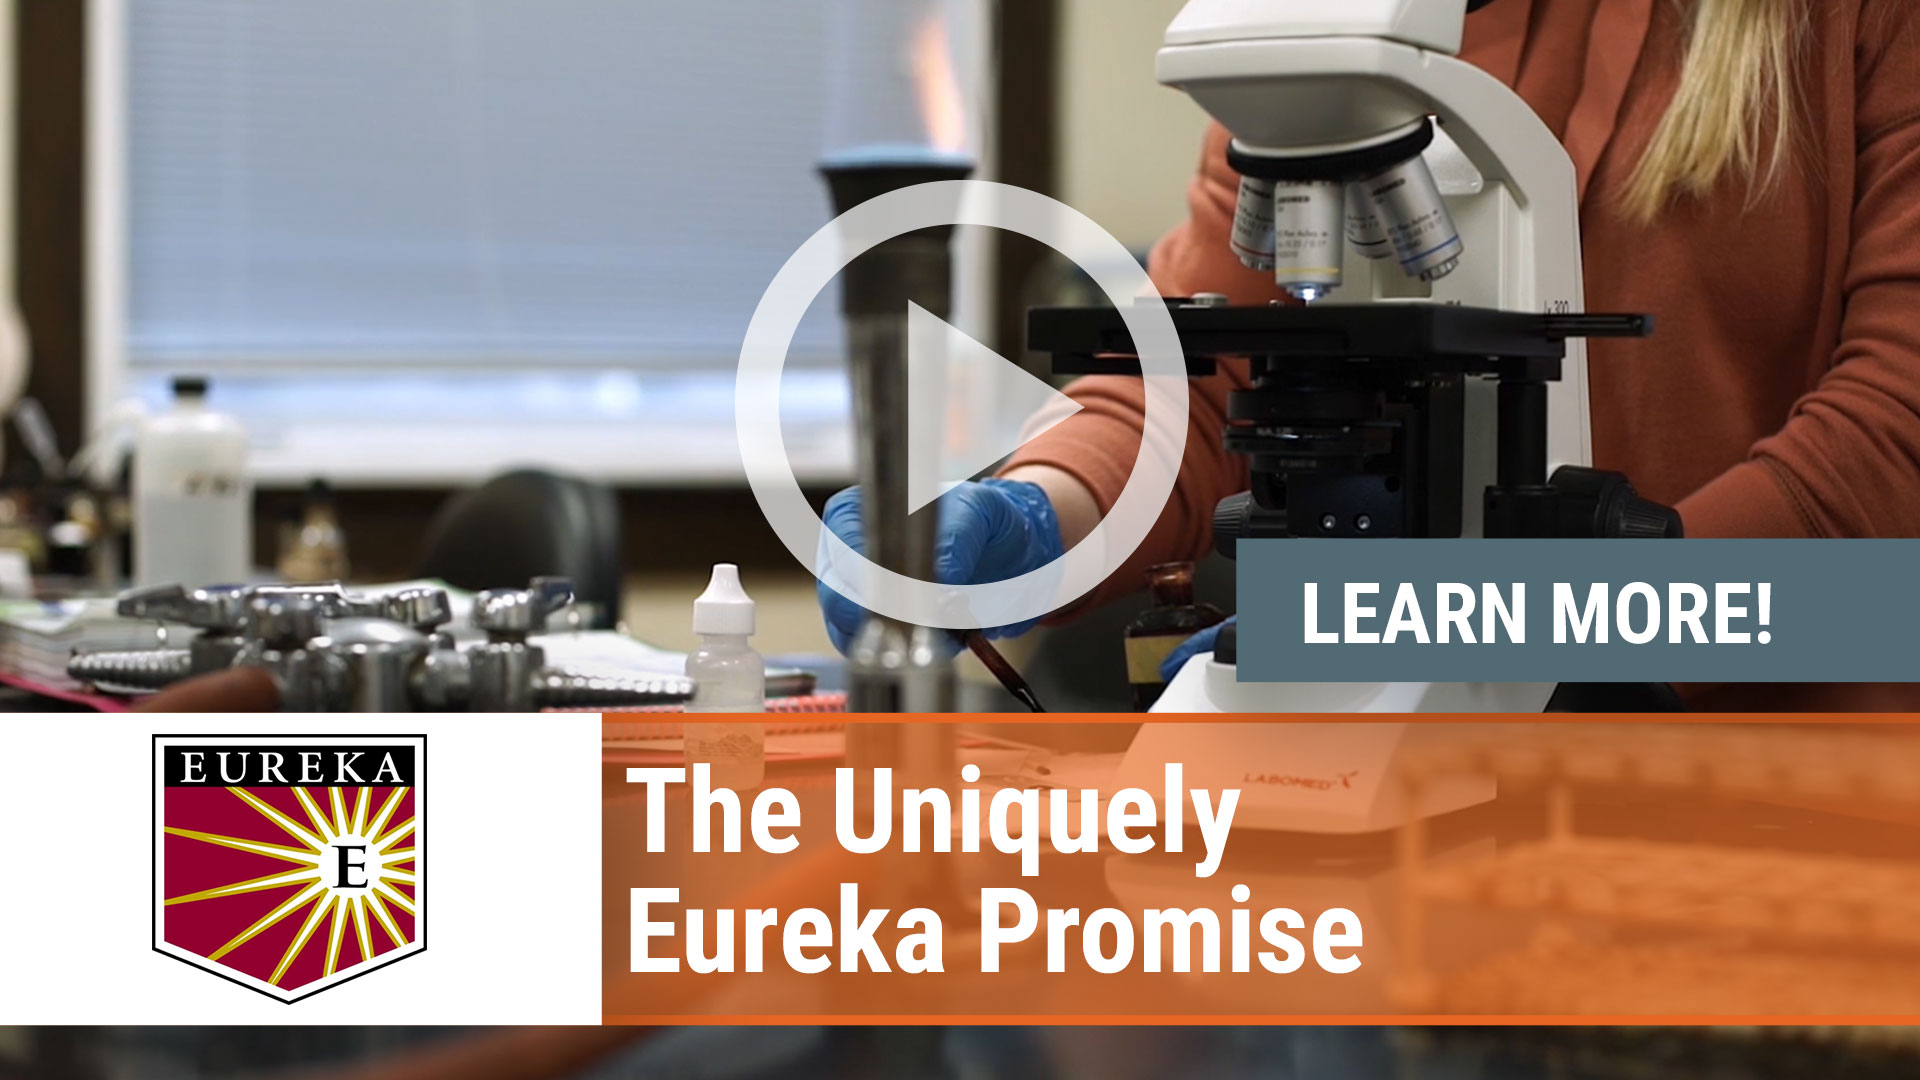 Watch our careers video for available job opening The Unique Eureka Promise in Eureka, IL, USA